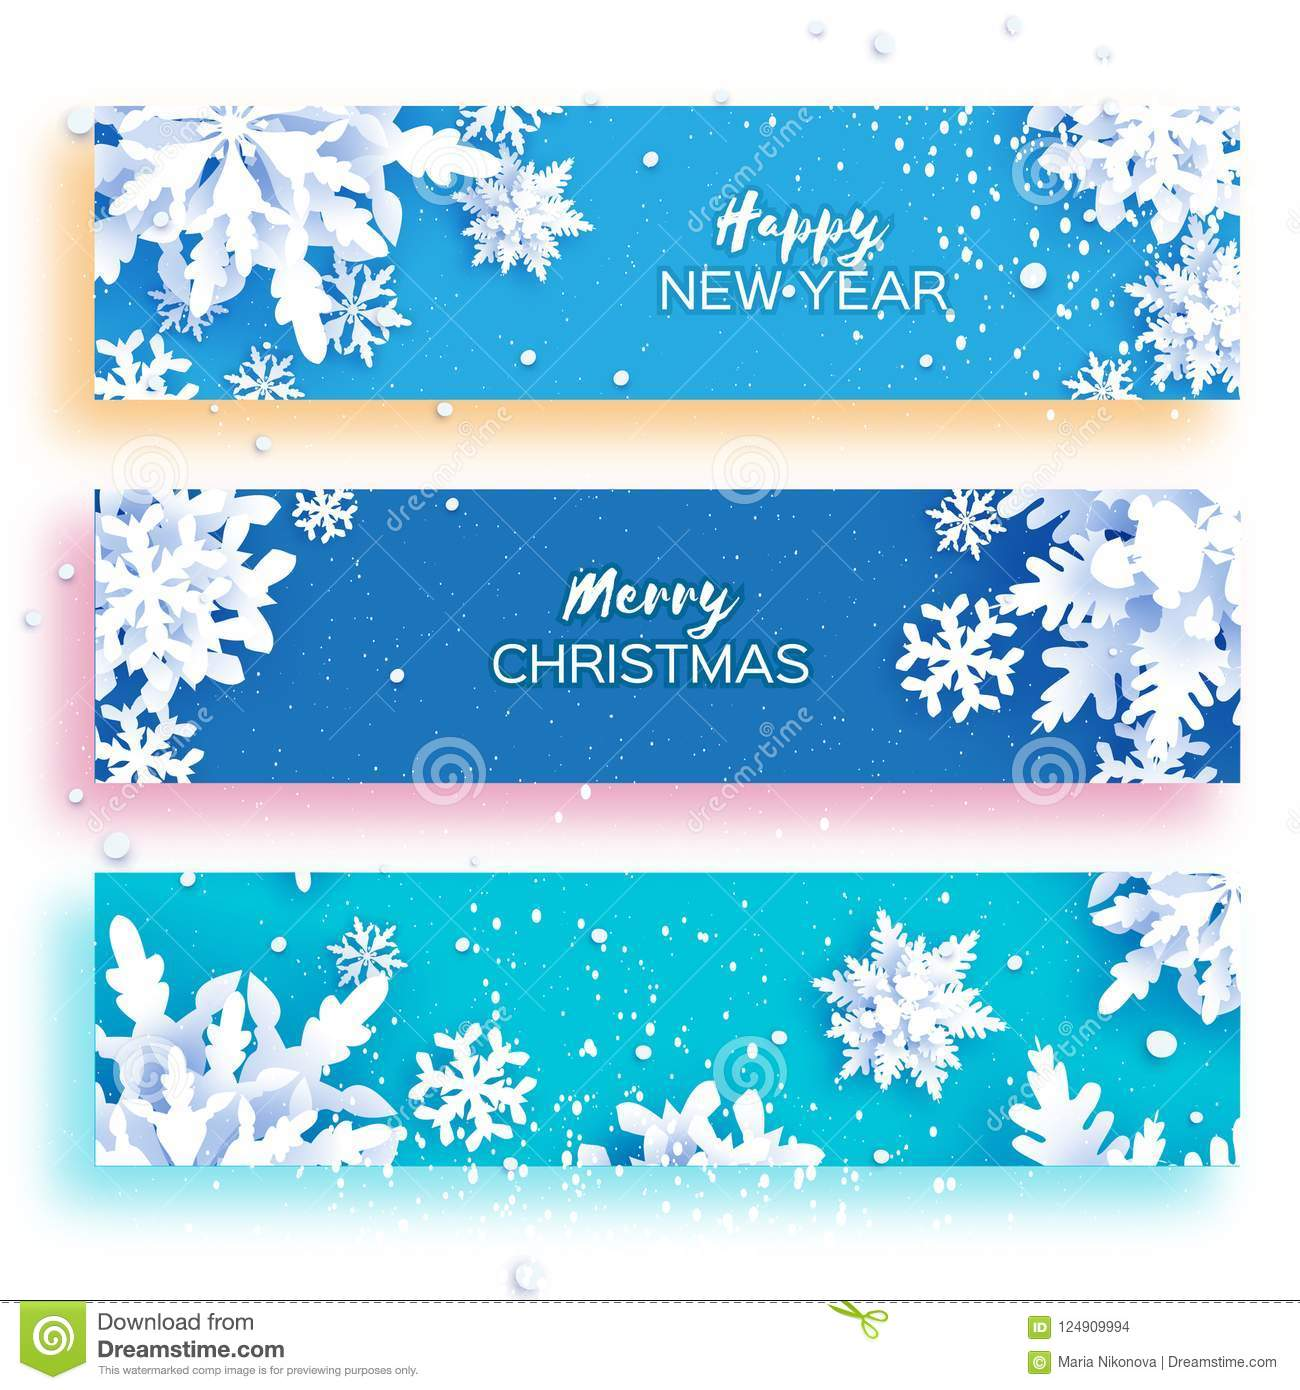 3 gorizontal merry christmas and happy new year banner white paper cut snowflakes origami decoration background stock vector illustration of origami frozen 124909994 https www dreamstime com gorizontal merry christmas happy new year banner white paper cut snowflakes origami decoration background gorizontal merry image124909994